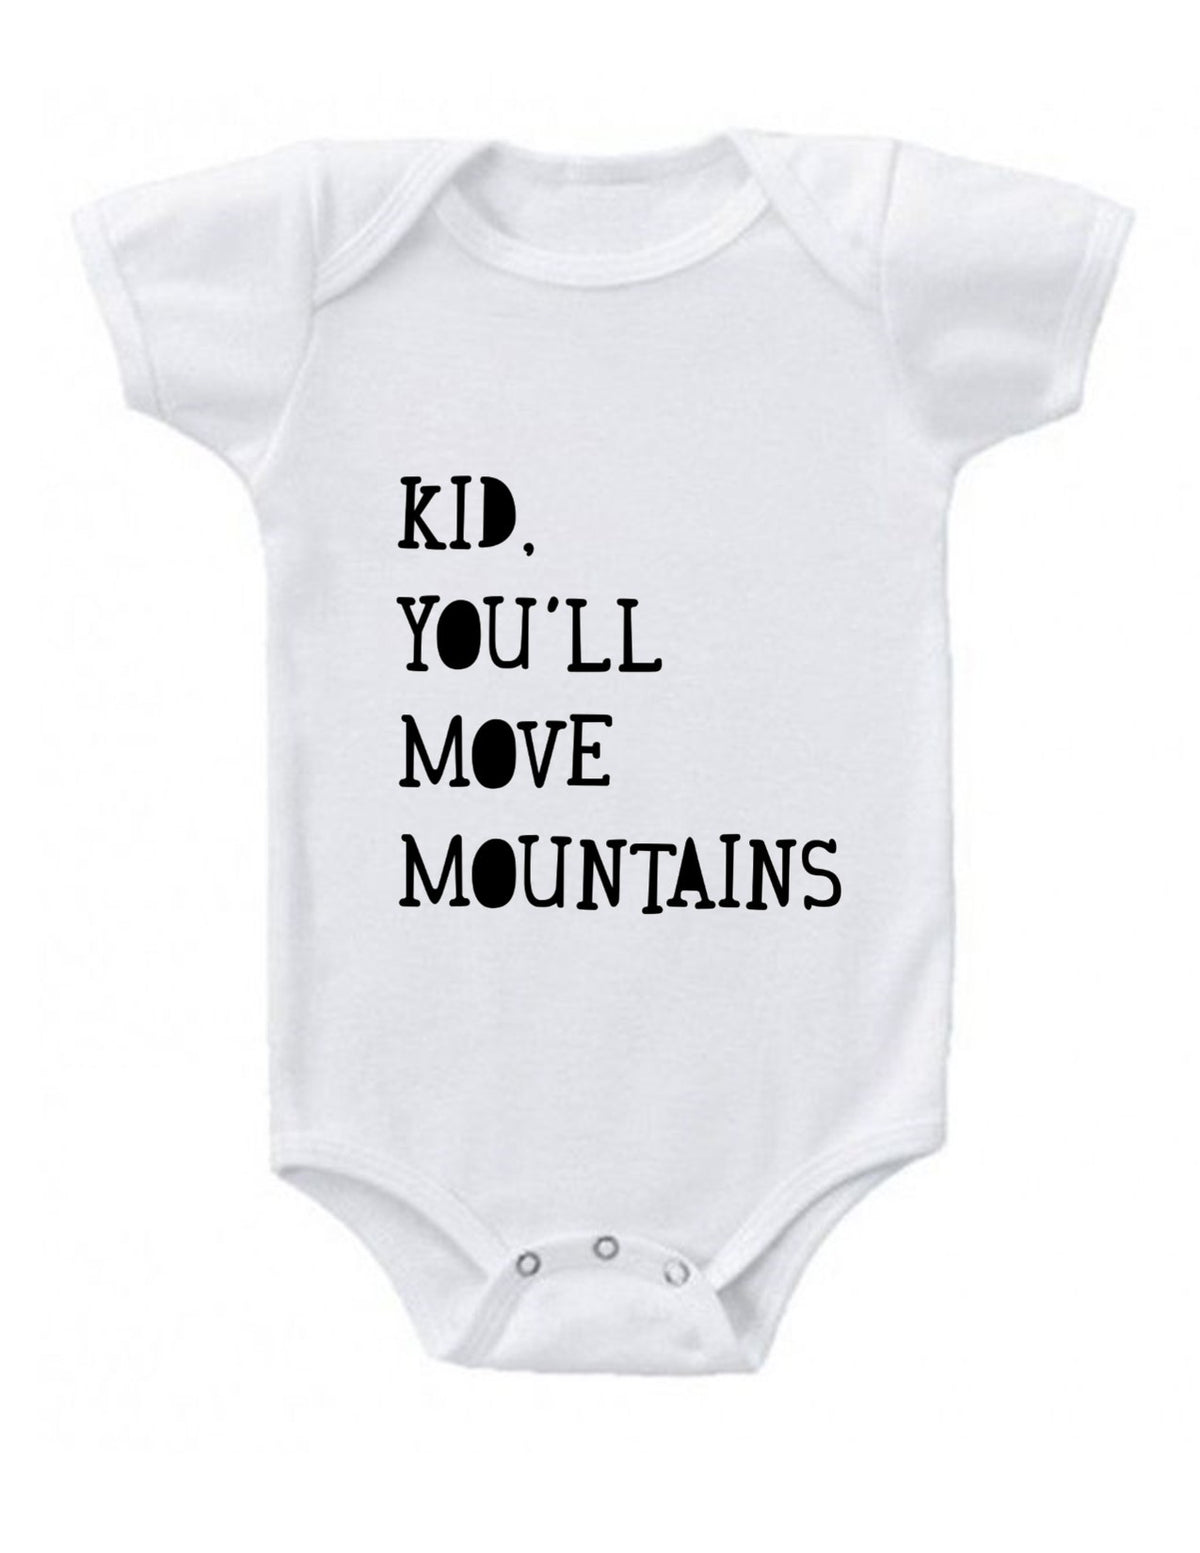 Kid You'll Move Mountains Baby Onesie